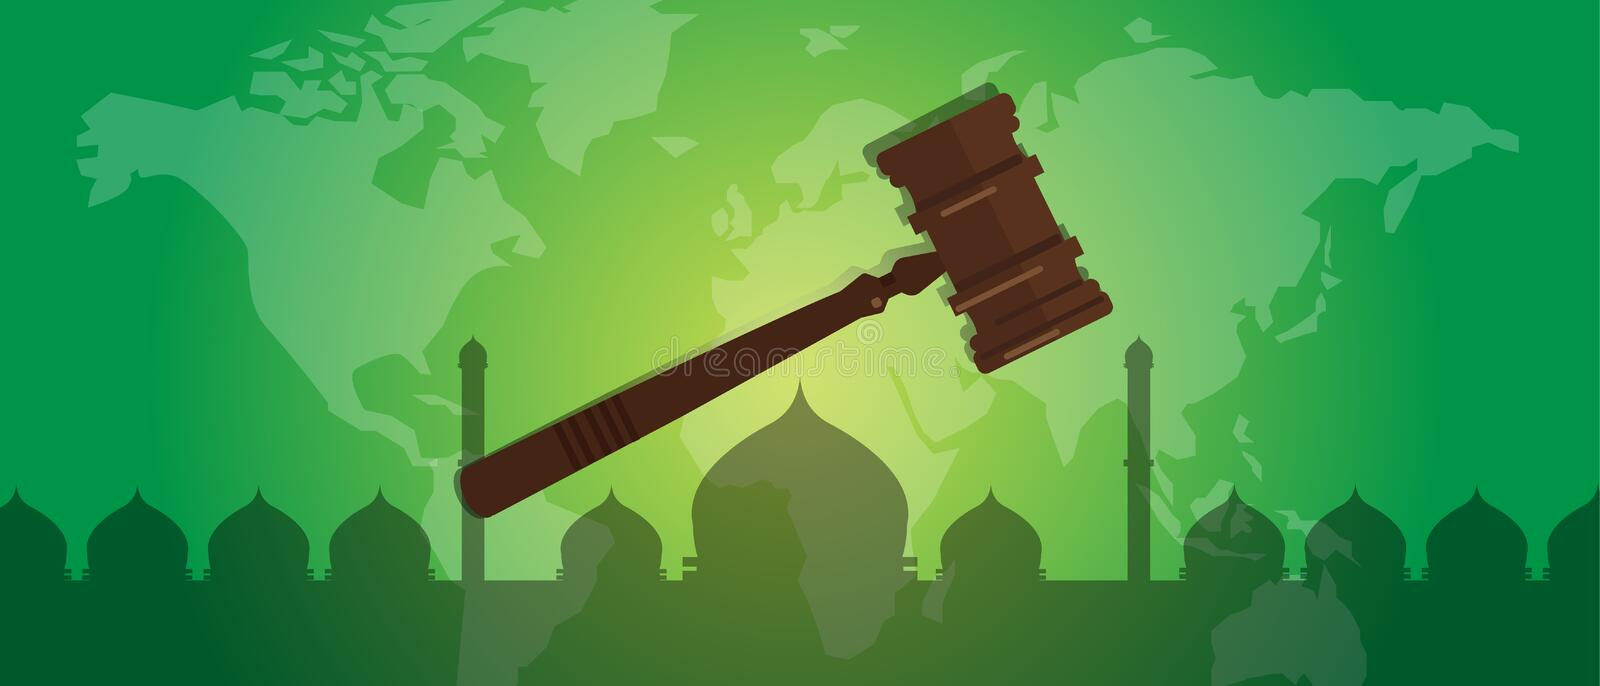 Sharia Islam law justice. Verdict case legal gavel wooden hammer crime court auction symbol vector vector illustration